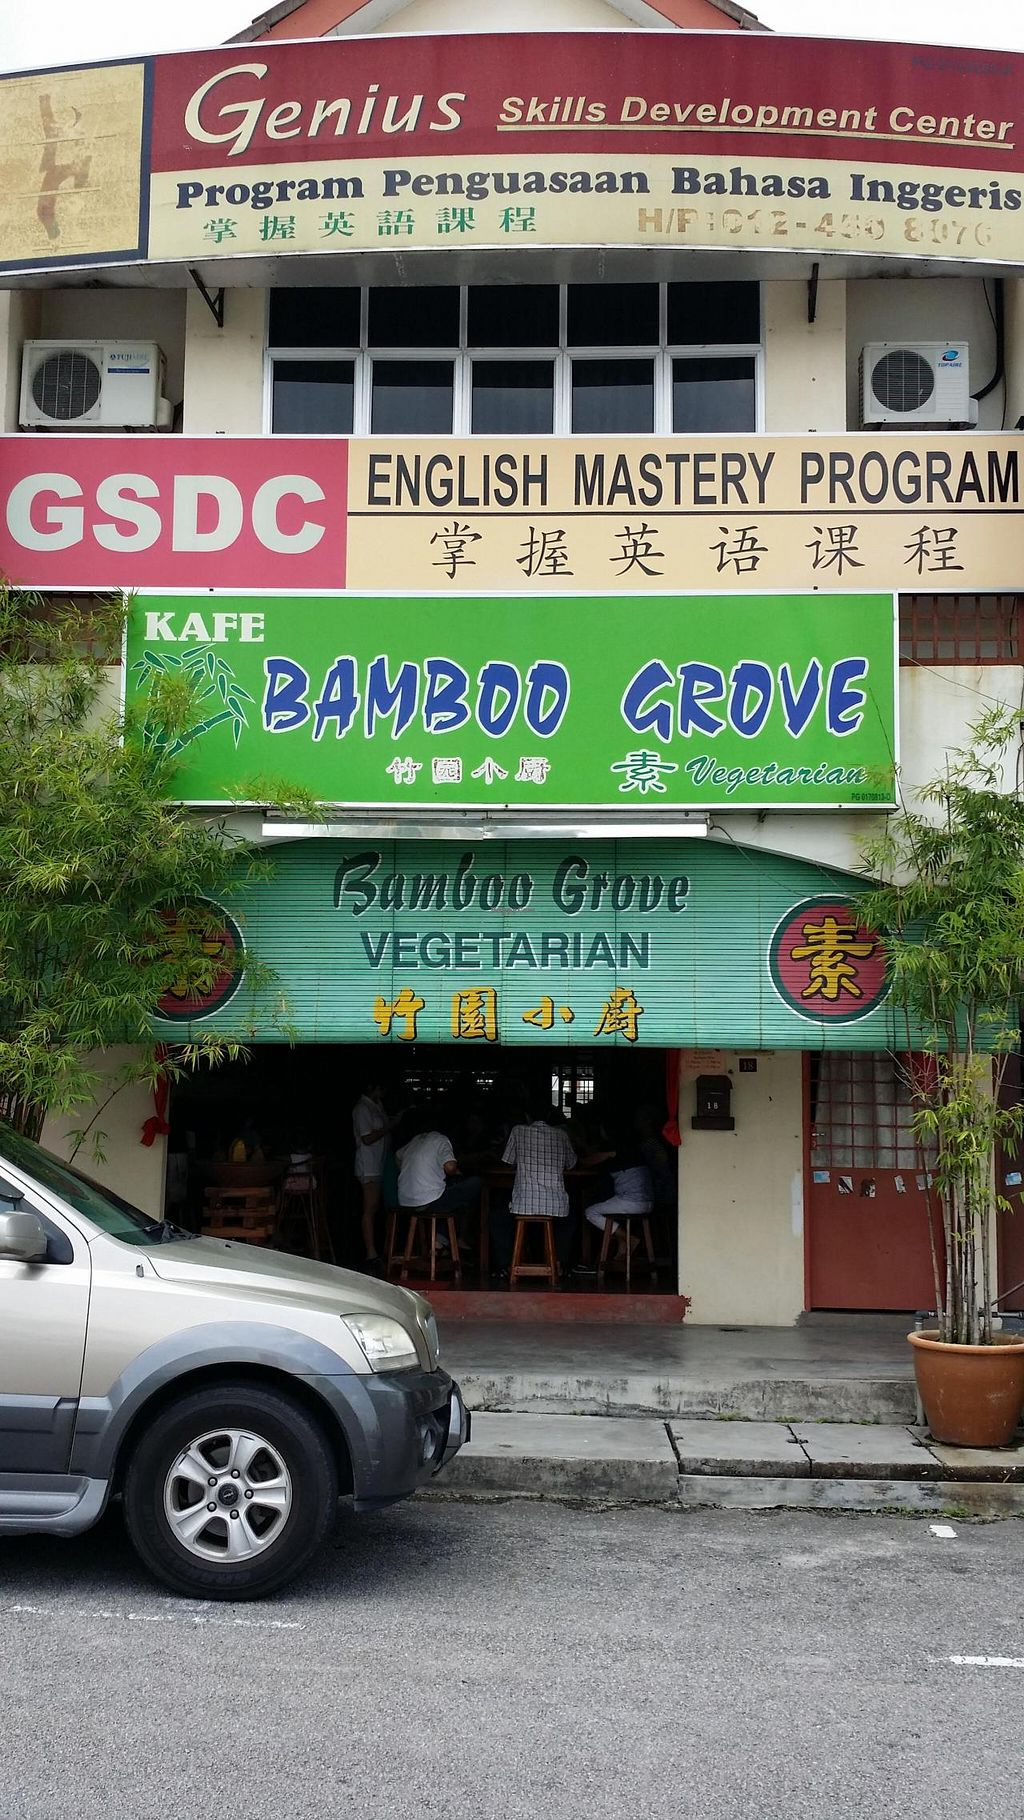 """Photo of Bamboo Grove Cafe Vegetarian  by <a href=""""/members/profile/walter007"""">walter007</a> <br/>Shop <br/> April 29, 2014  - <a href='/contact/abuse/image/46918/68910'>Report</a>"""